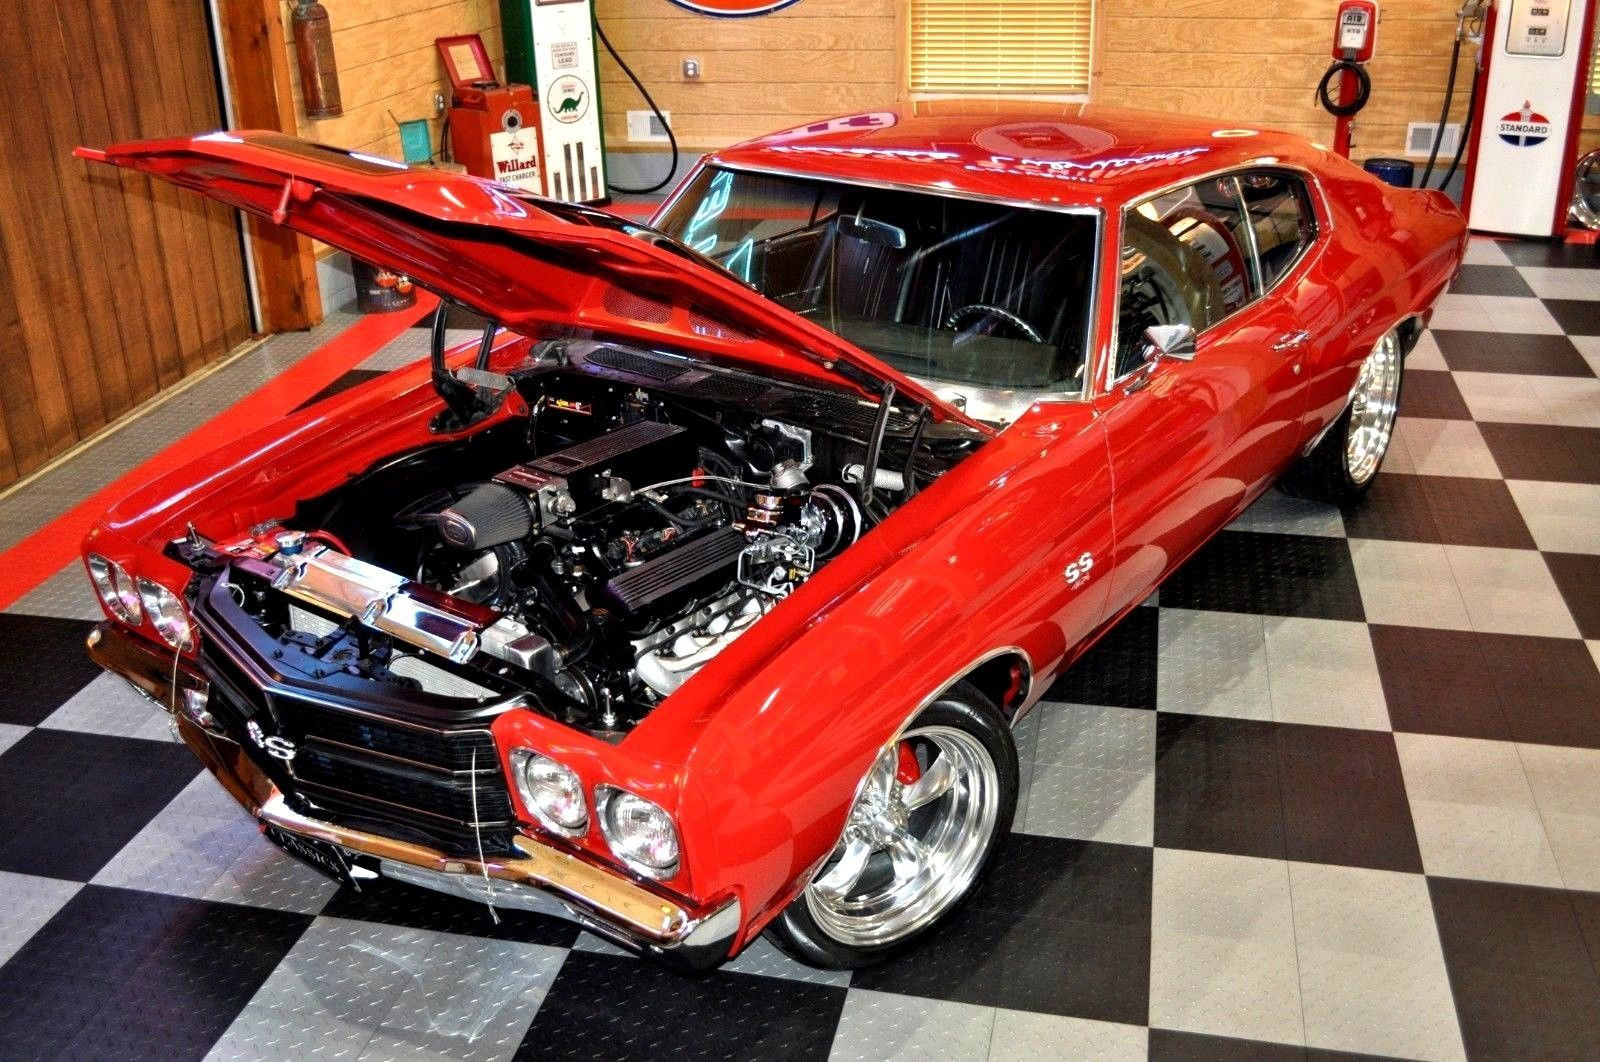 1970 Chevrolet Chevelle Ss 454 Pro Touring Restomod Must Sell No